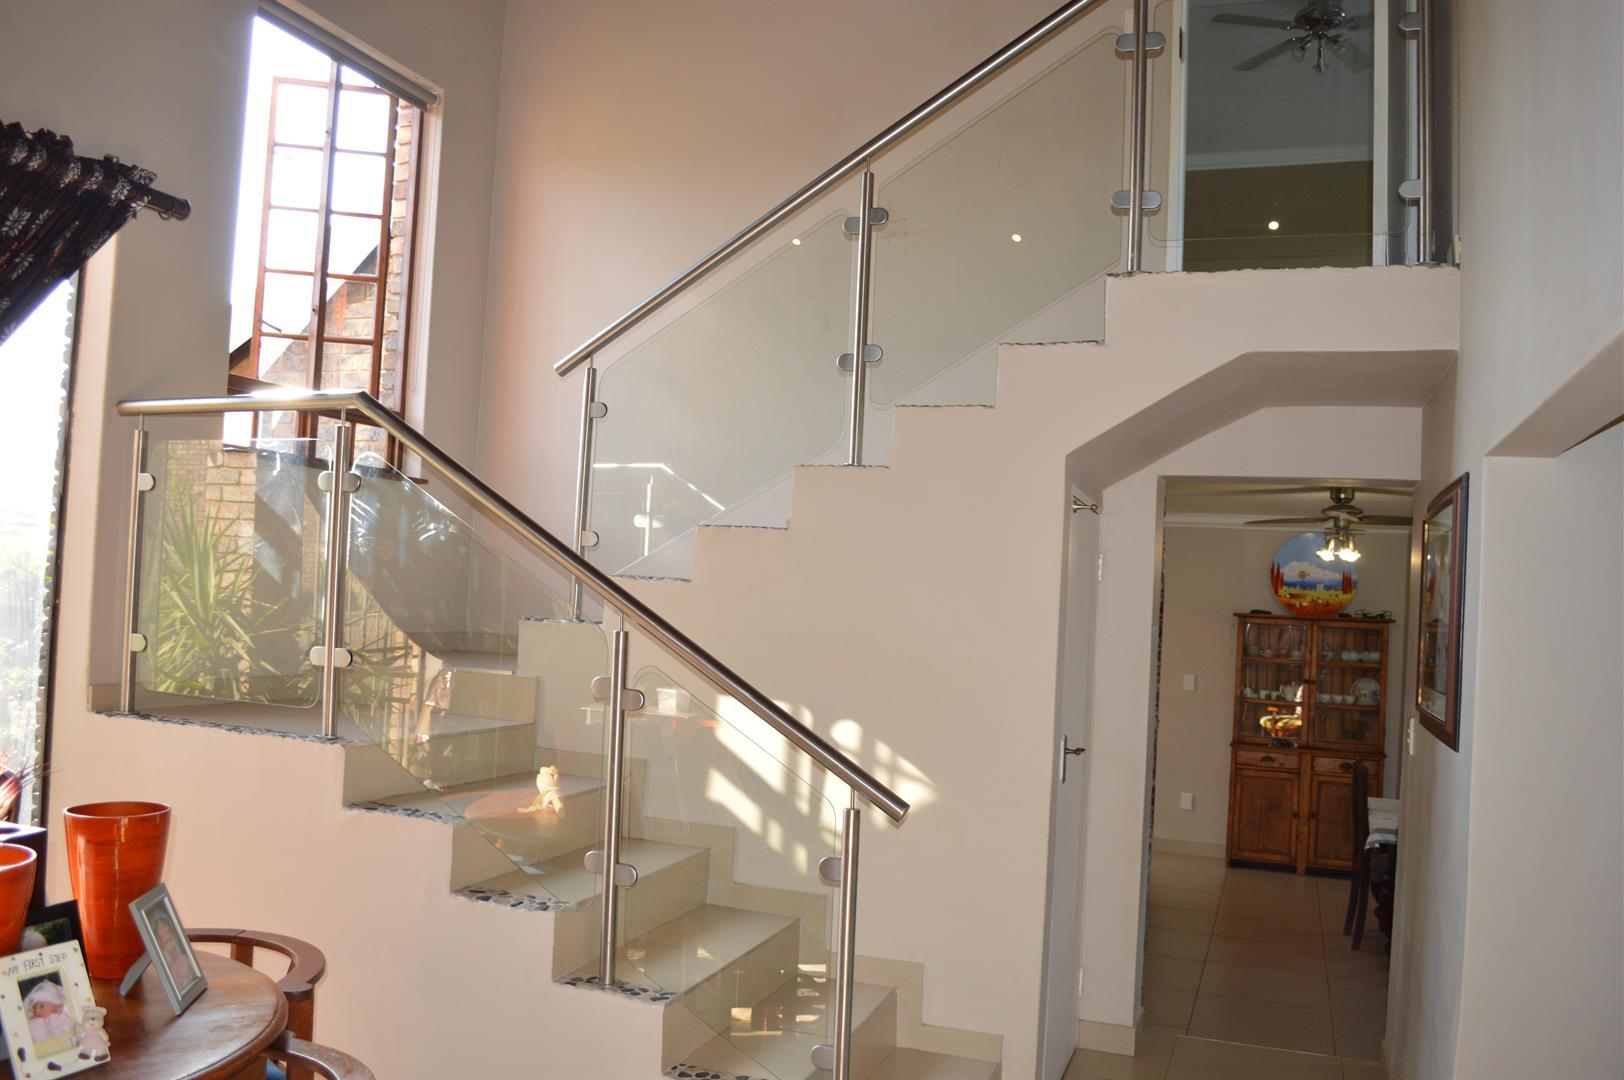 Raslouw A H property for sale. Ref No: 13442161. Picture no 17